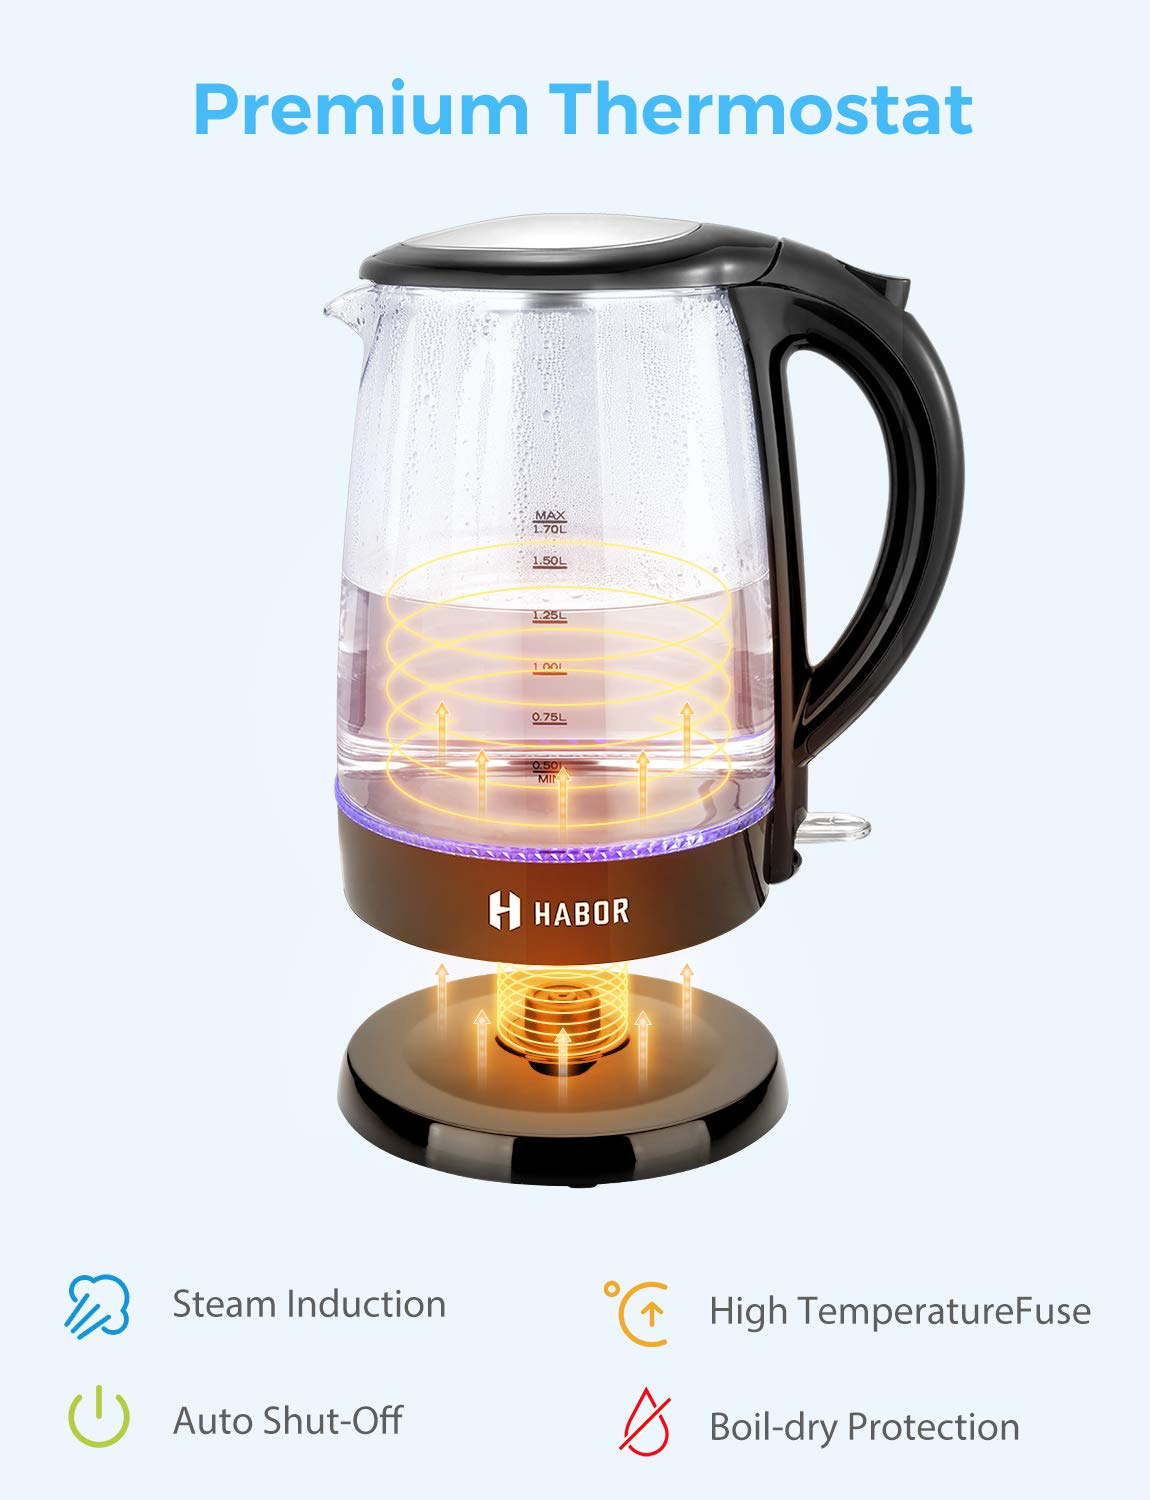 Habor Electric kettle, Water Boiler 1500W Fast Heating Tea Pot, 1.8 Quart (1.7 L) Blue LED Lights Bright Glass Body, Auto Shut-Off Boil-Dry Protection Stainless Steel Inner Lip by Habor (Image #6)